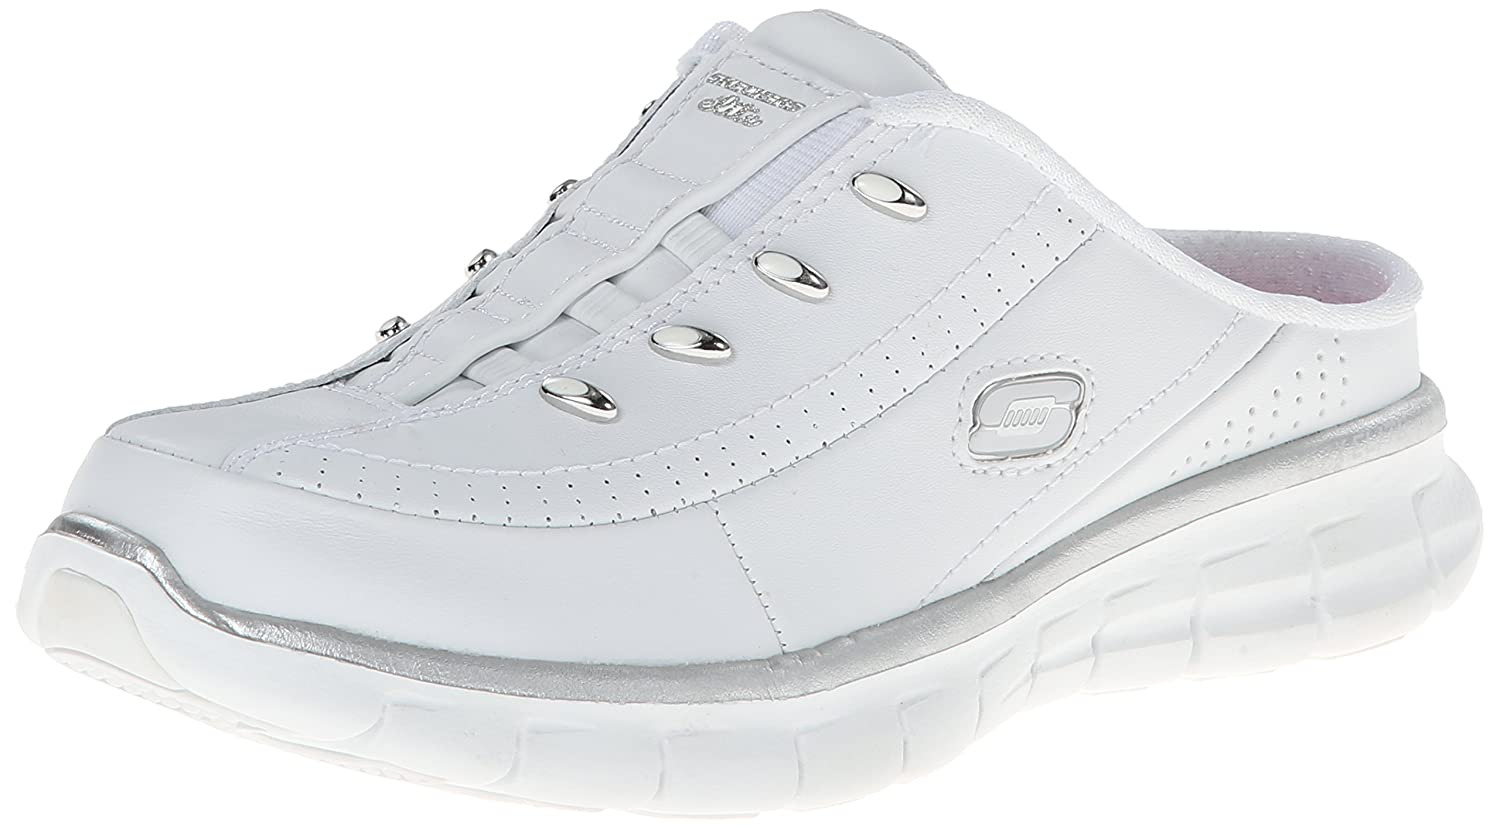 Skechers Sport Women's Elite Glam Synergy Slip-On Mule Sneaker:  Amazon.co.uk: Shoes & Bags